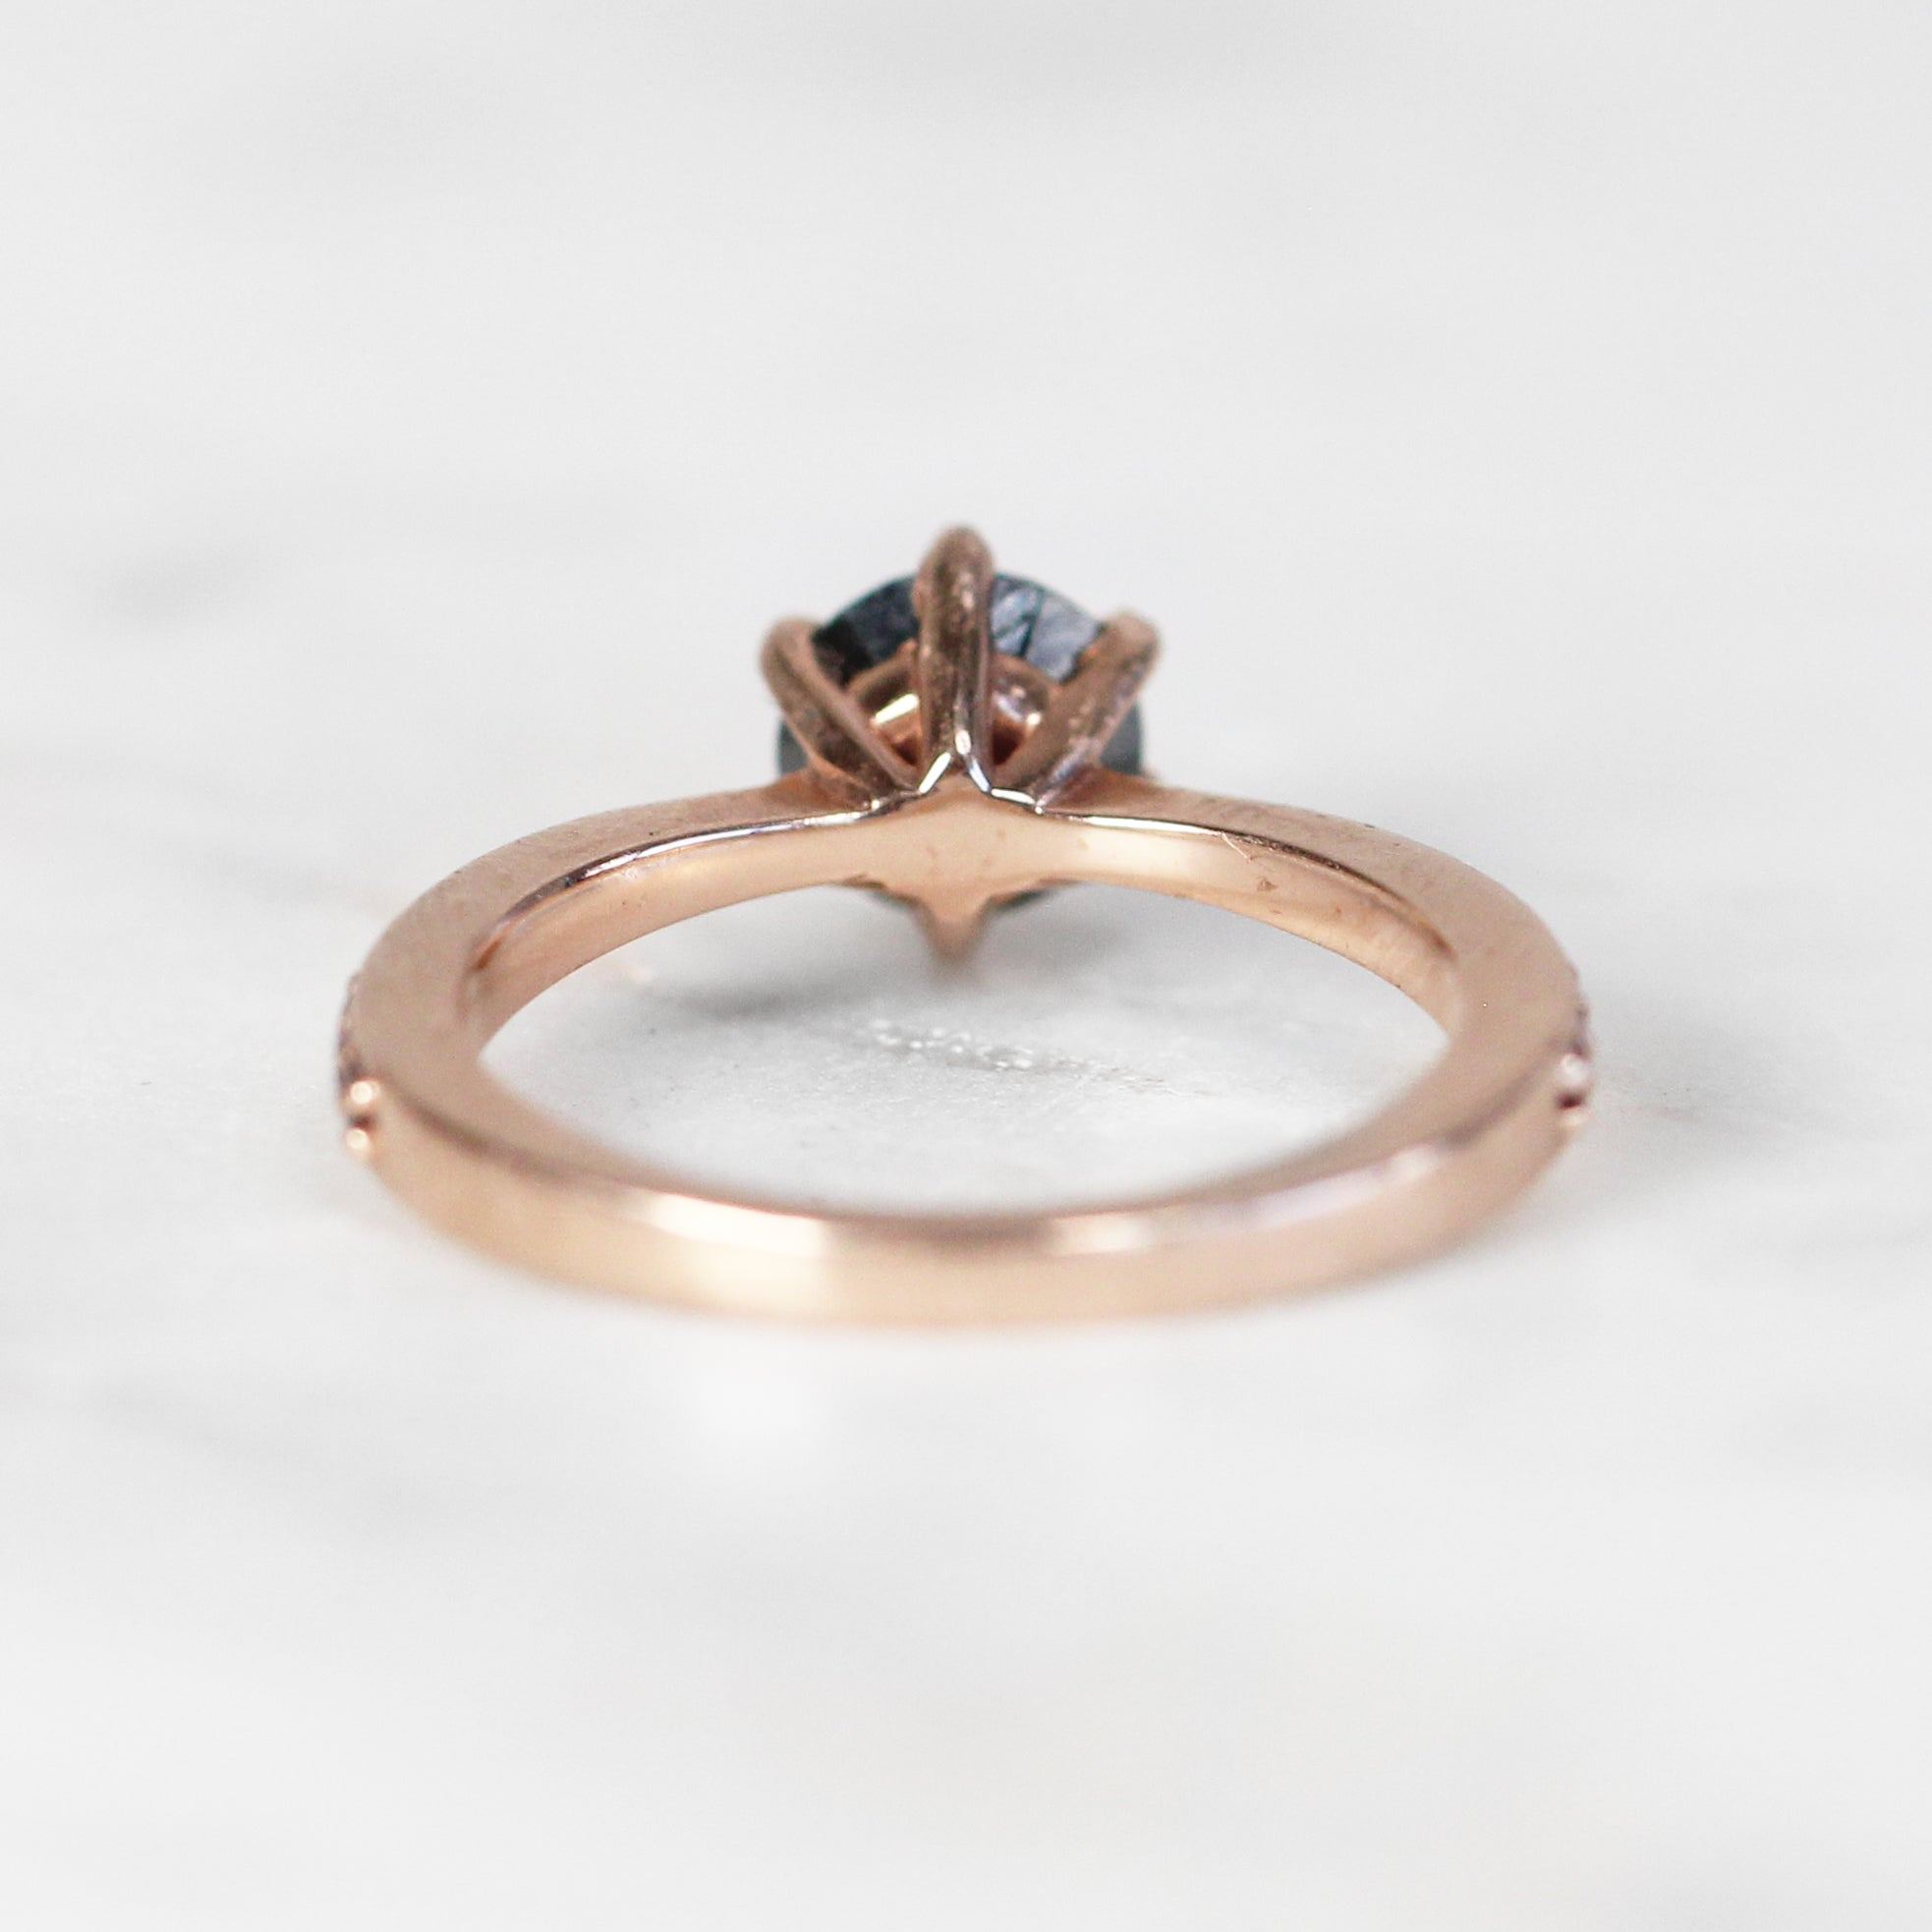 Maxine Ring with .70ct Moissanite in 10k Rose Gold - Custom - Celestial Diamonds ® by Midwinter Co.